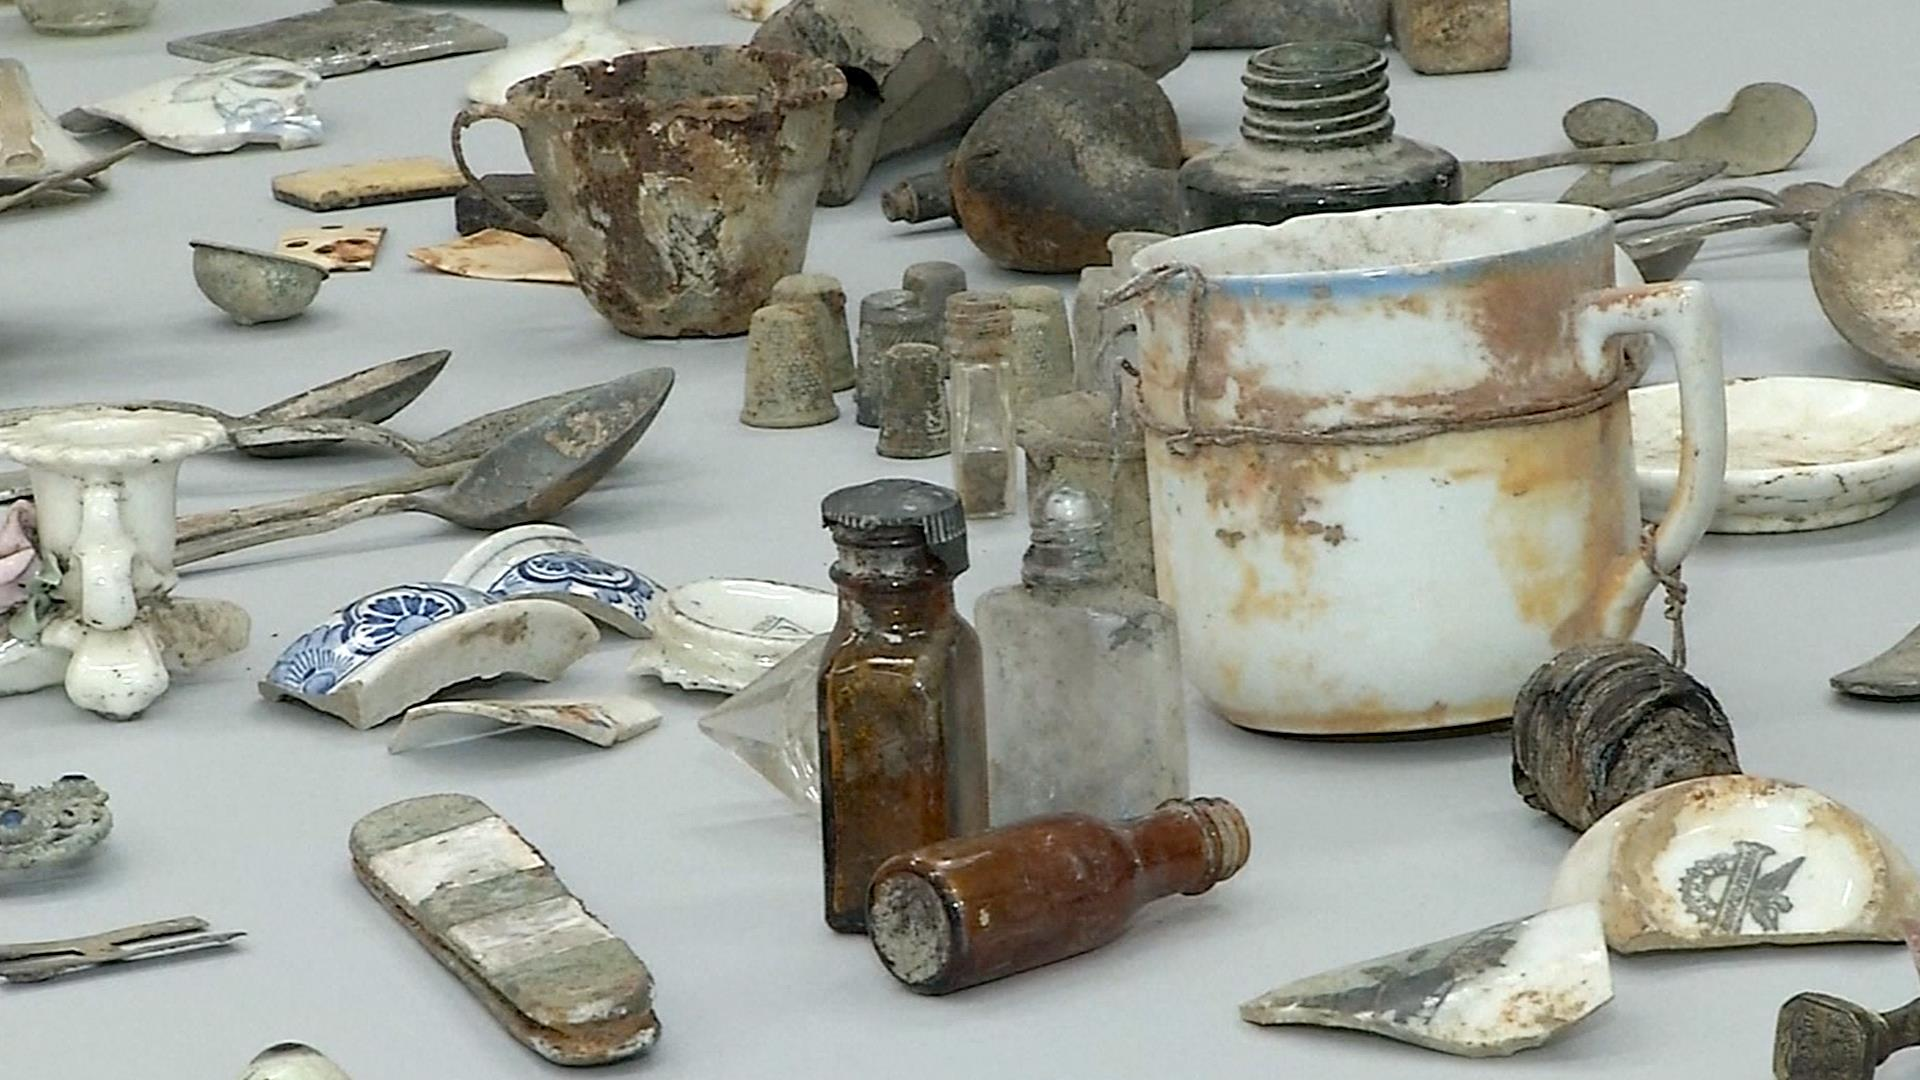 16 000 Belongings Of Auschwitz Victims Rediscovered Nbc News